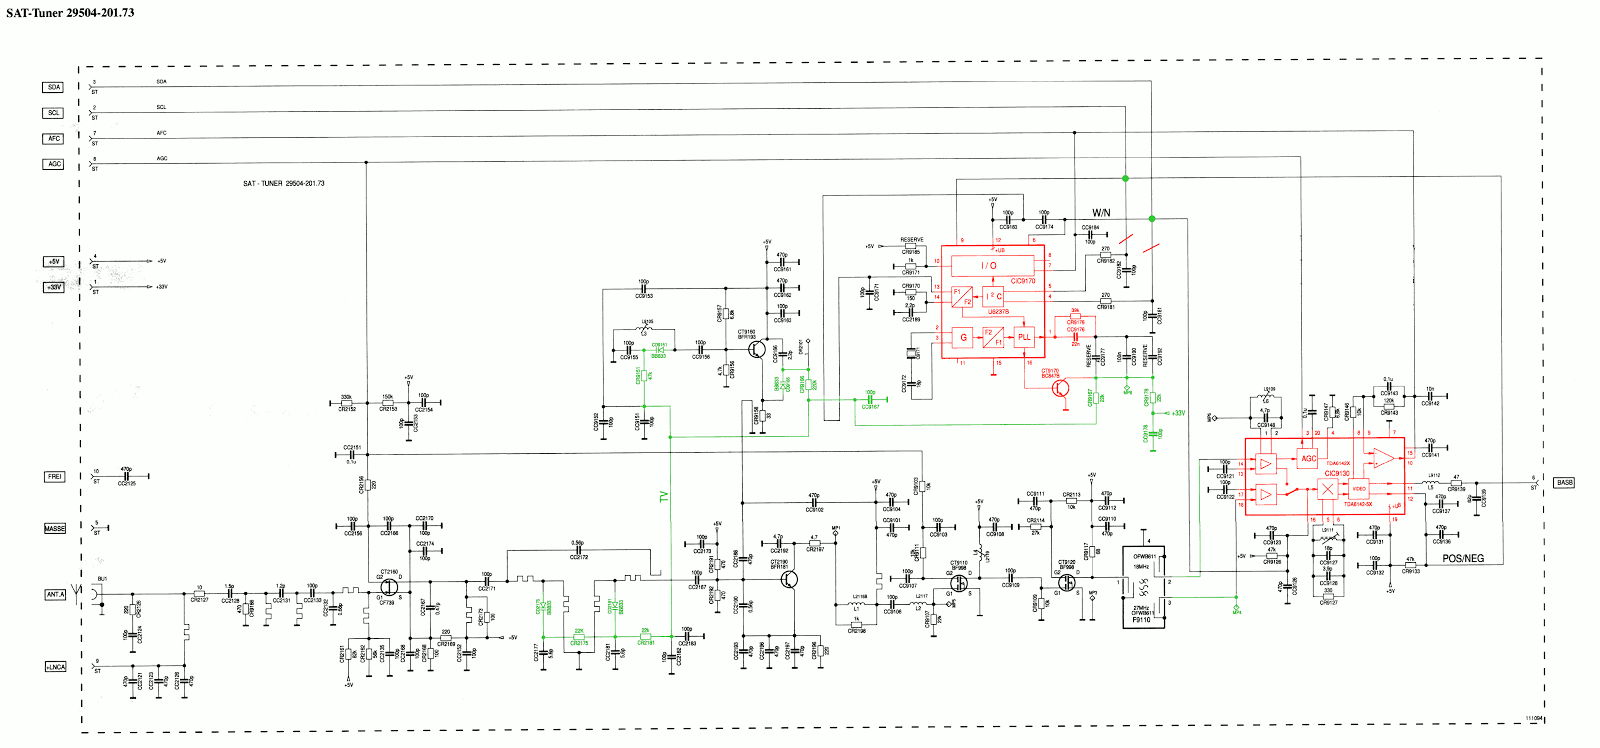 SAT Tuner U6237B modification schematic